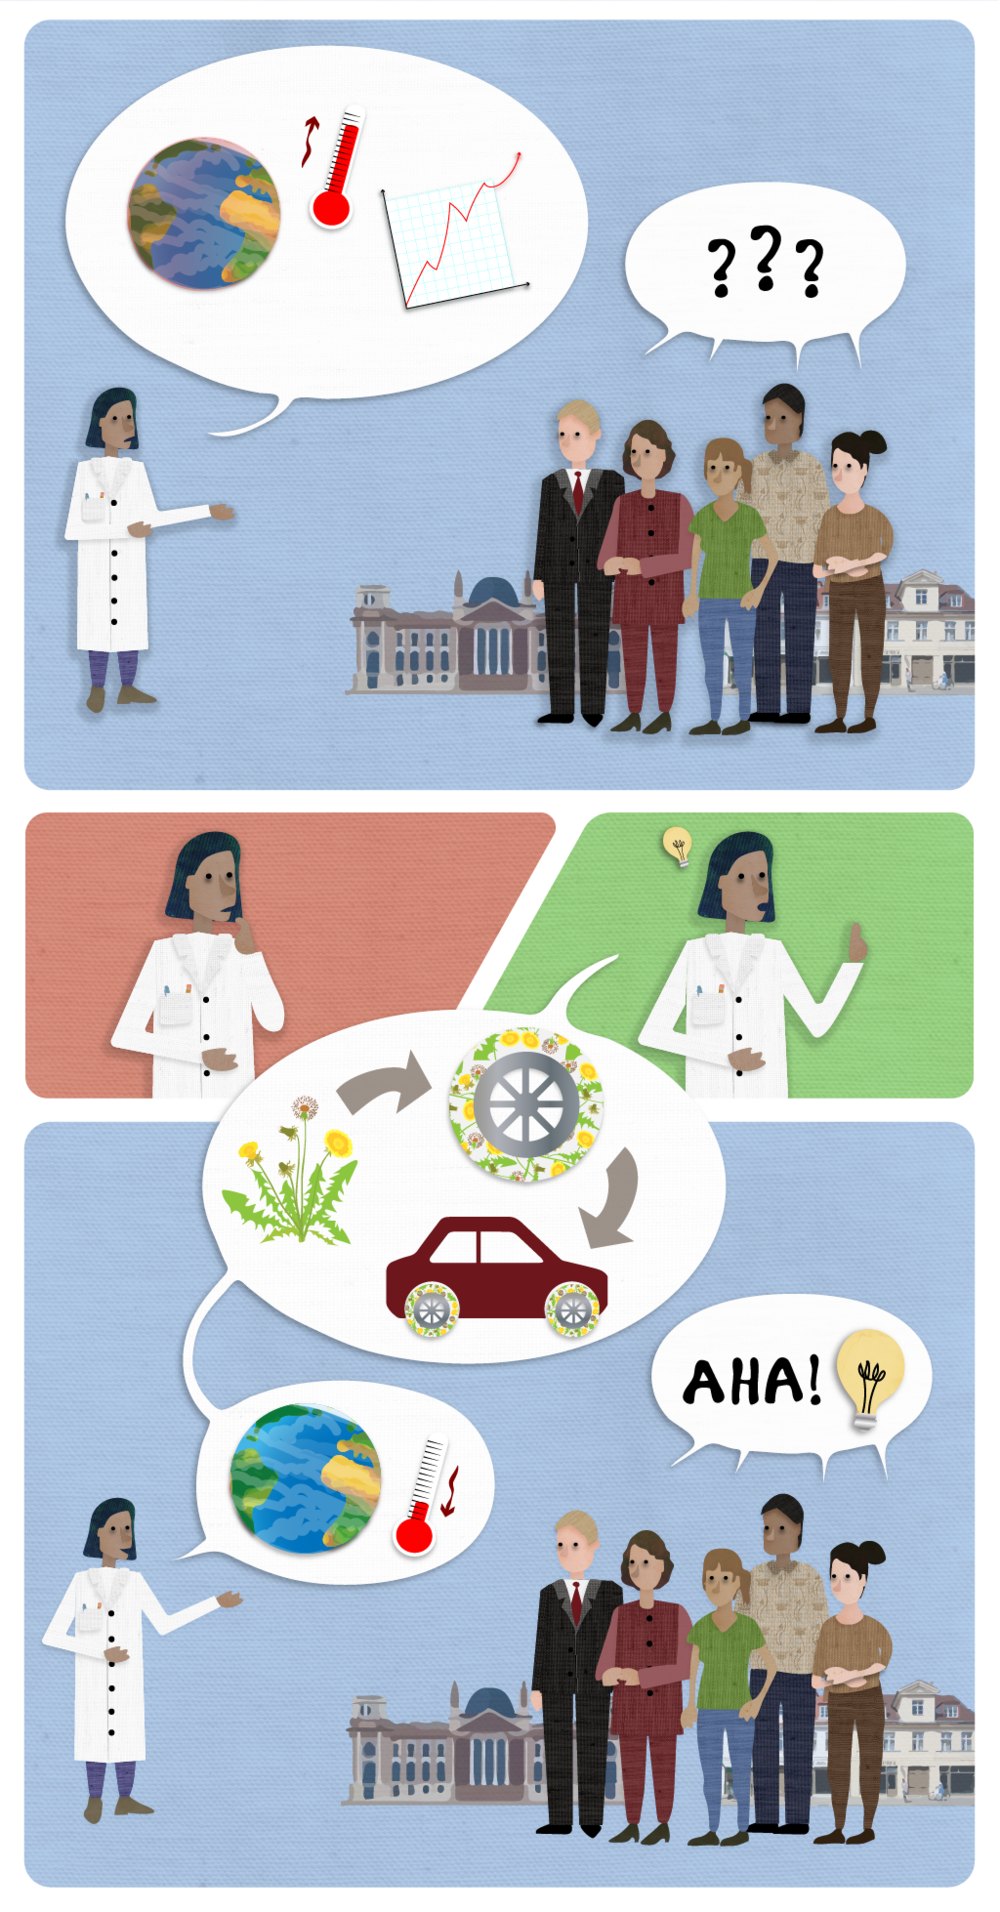 This piece was produced for the Unizeit in Kiel to accompany a press release on bioeconomy research: combining natural raw materials with new concepts to create more sustainable production models. As an example, using tires made out of dandelions!  Find the article in English  here  und auf Deutsch  hier . And find an animated GIF based on this strip  here !